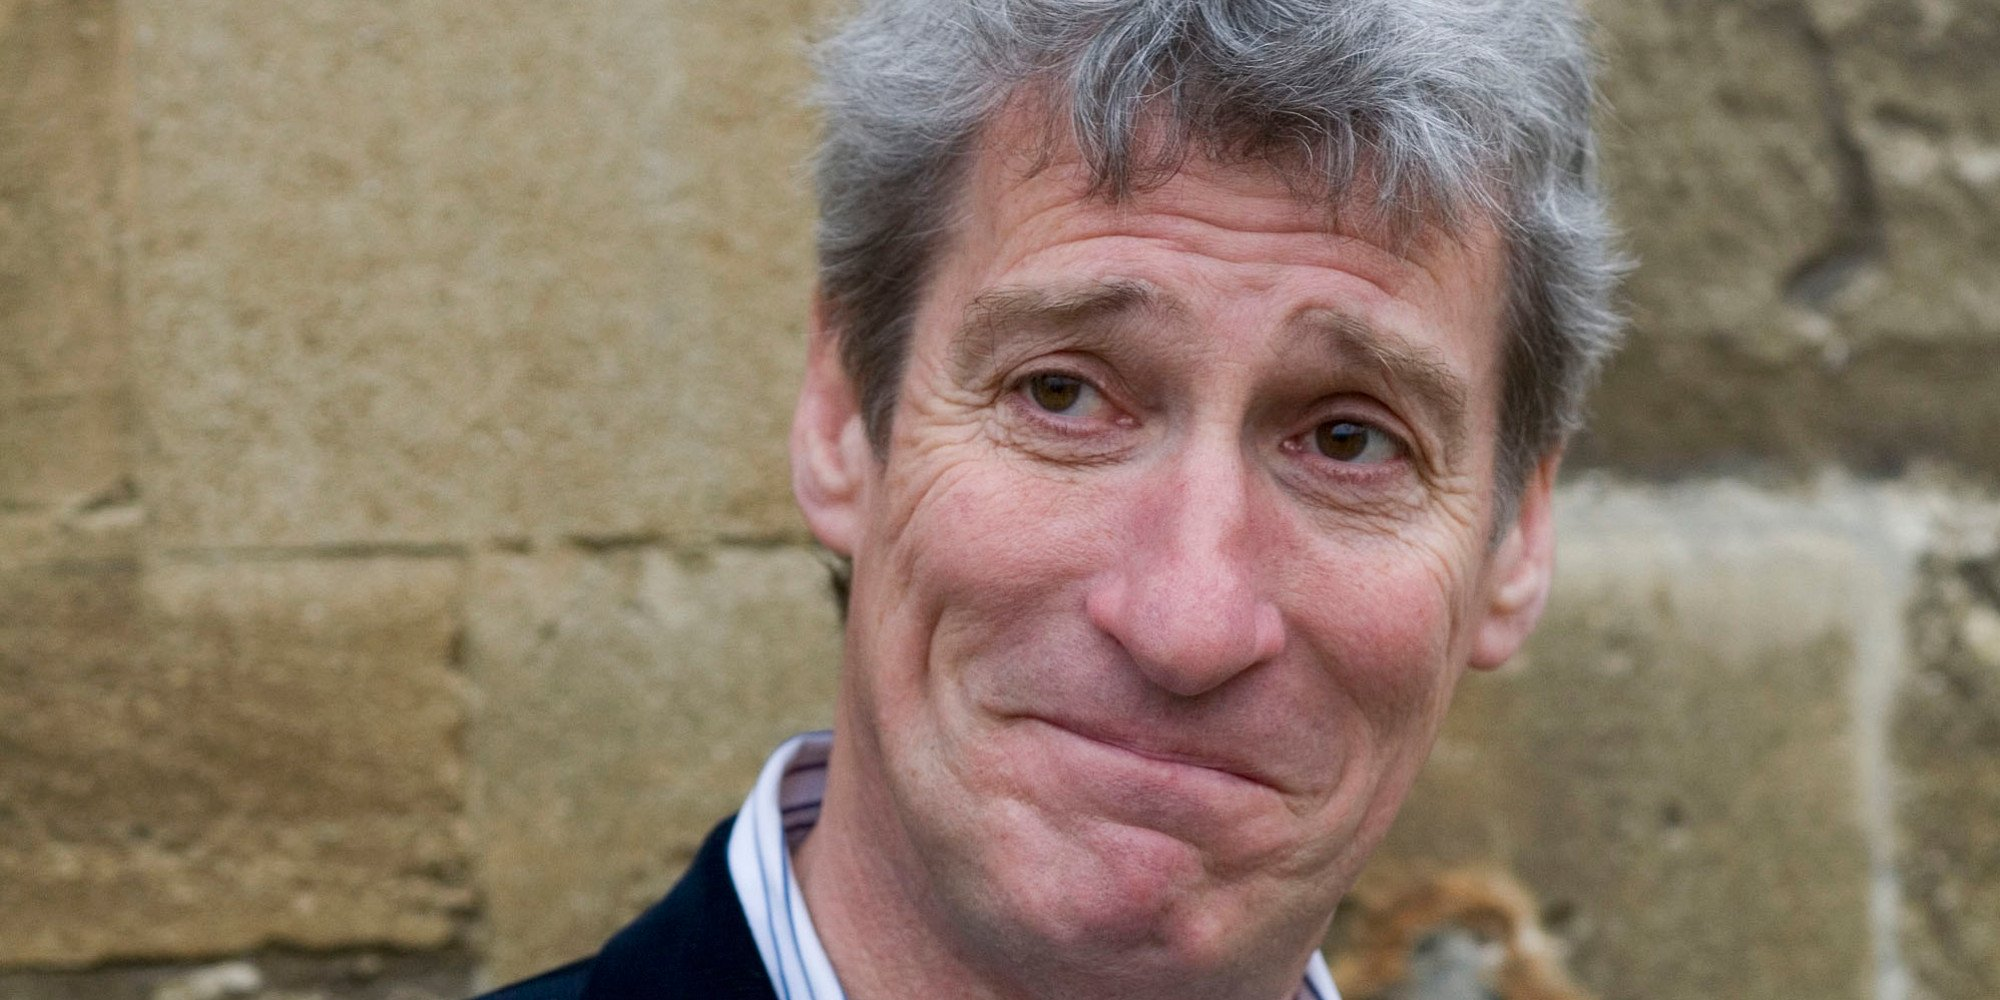 """OXFORD, UNITED KINGDOM - MARCH 24: Author and Broadcaster Jeremy Paxman poses for a portrait at the annual """"Sunday Times Oxford Literary Festival"""" held at Christ Church on March 24, 2007 in Oxford, England. (Photo by David Levenson/Getty Images)"""